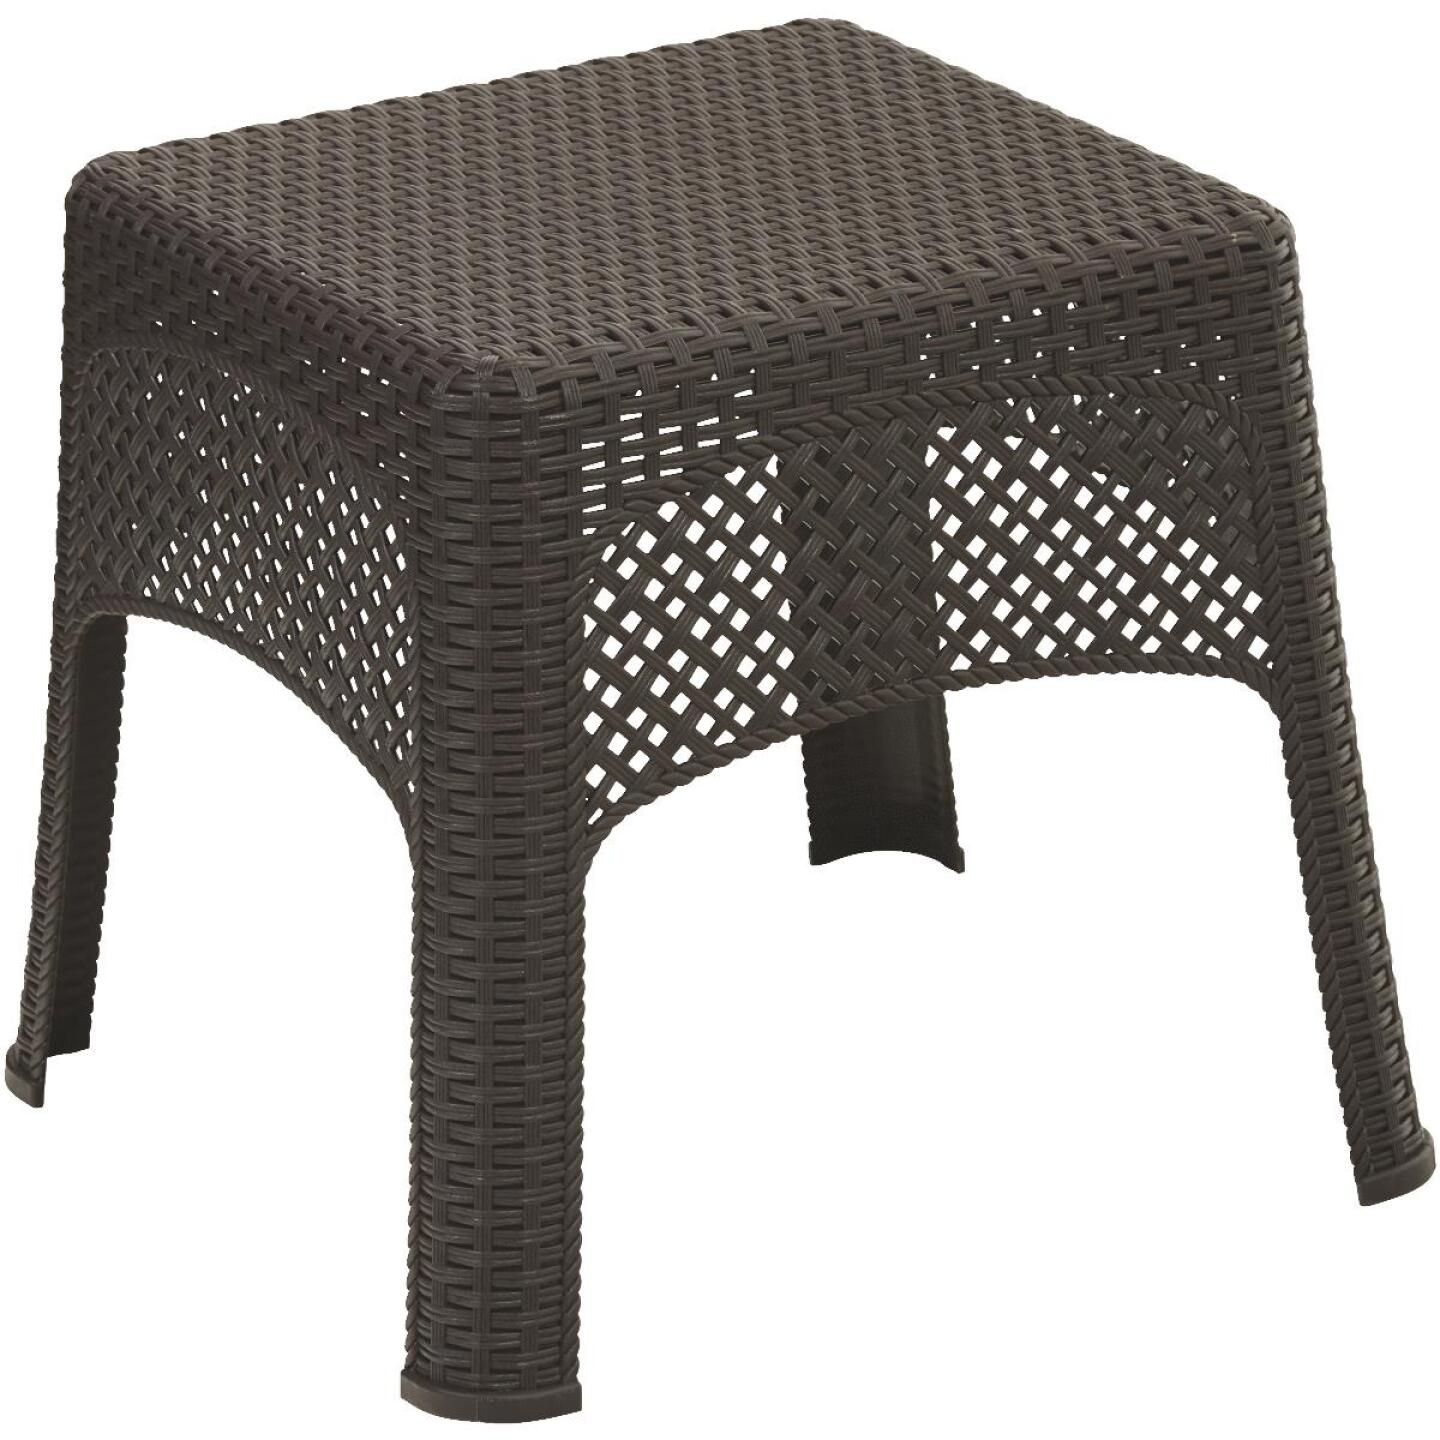 Adams Earth Brown 18.5 In. Square Woven Poly Side Table Image 1